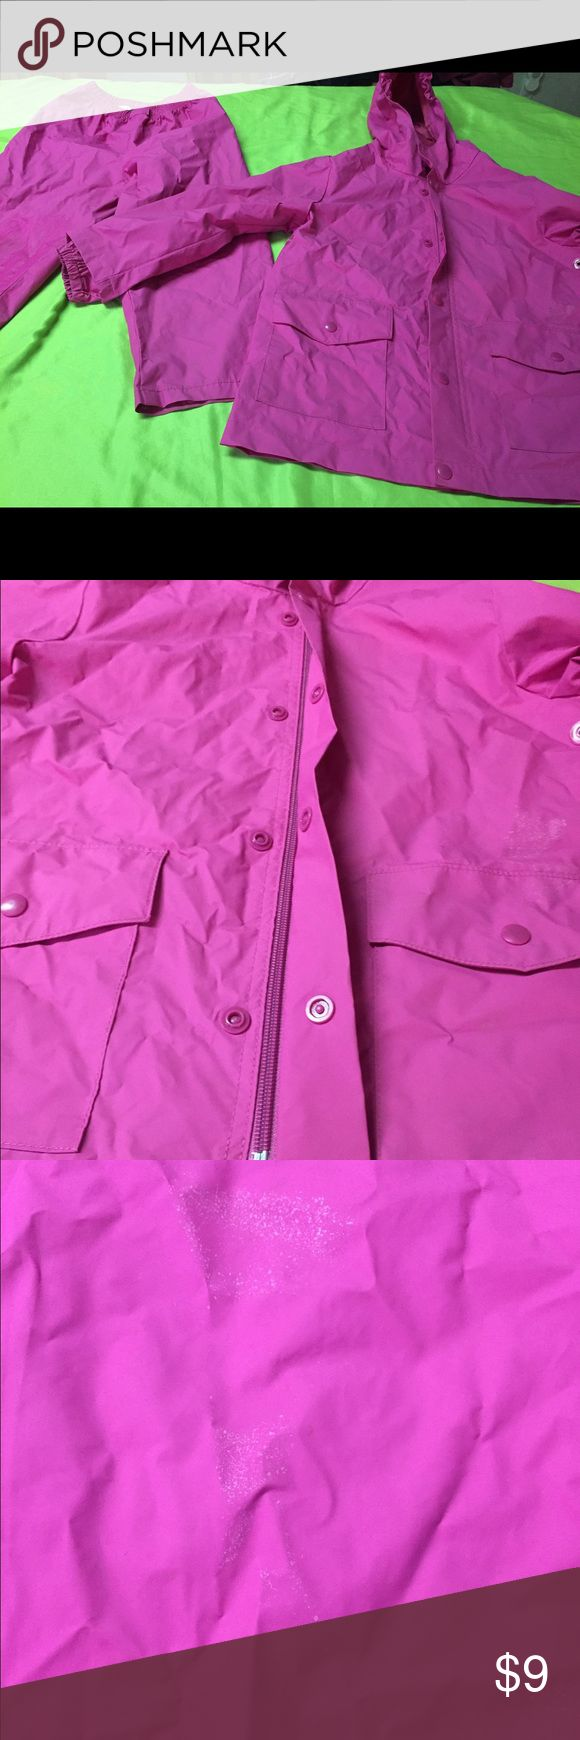 Girls rain suit. Size 5/6 jacket and pants. Girls hot pink full rain suit. There are NO rips or tears. There are though a slight stain on knees and a white speckled like stain on back (don't know what she got into?). These issues do NOT deter from the function though. Pro Rainer Jackets & Coats Raincoats